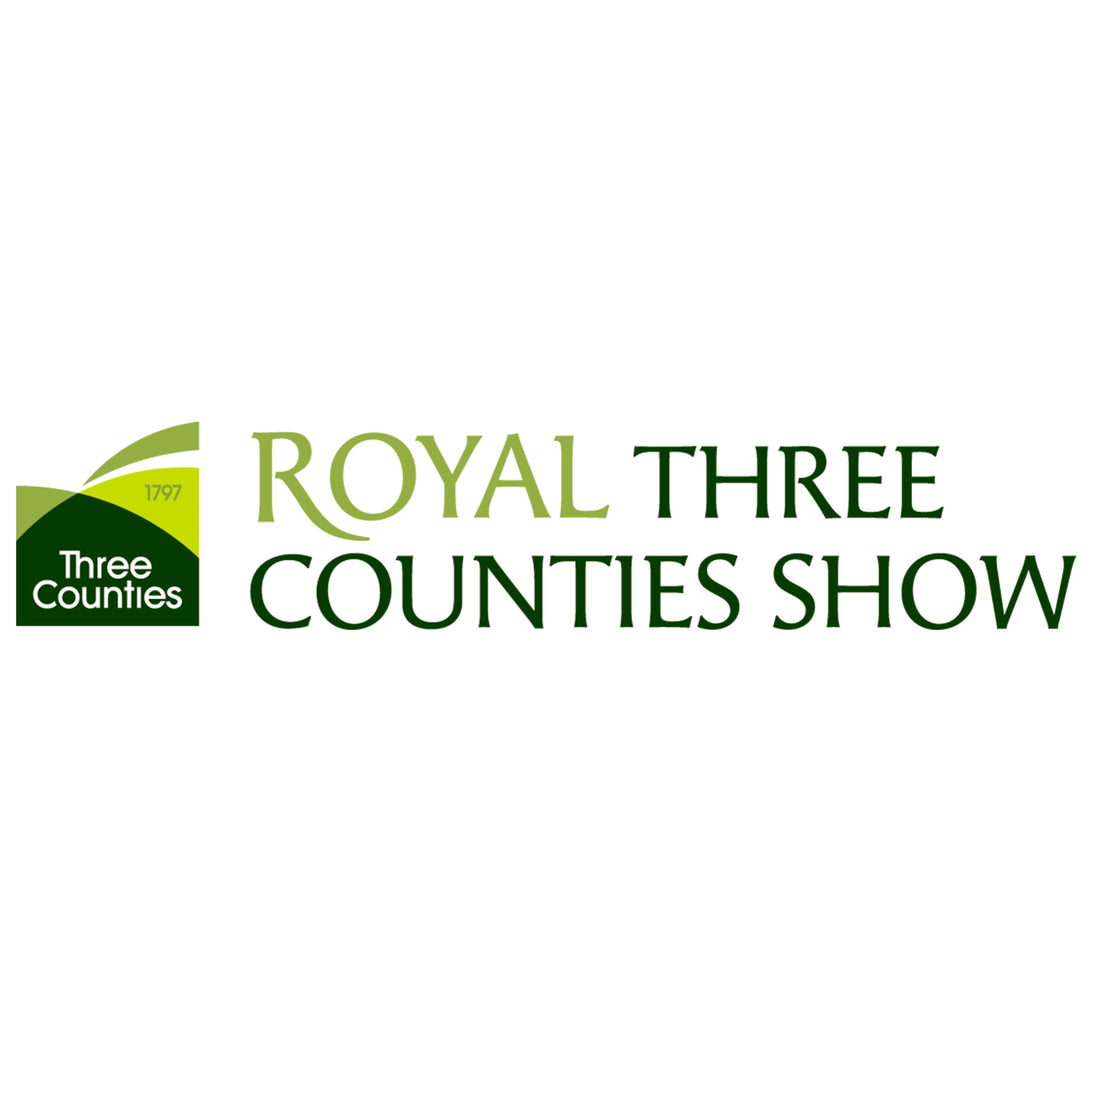 Royal Three Counties Show